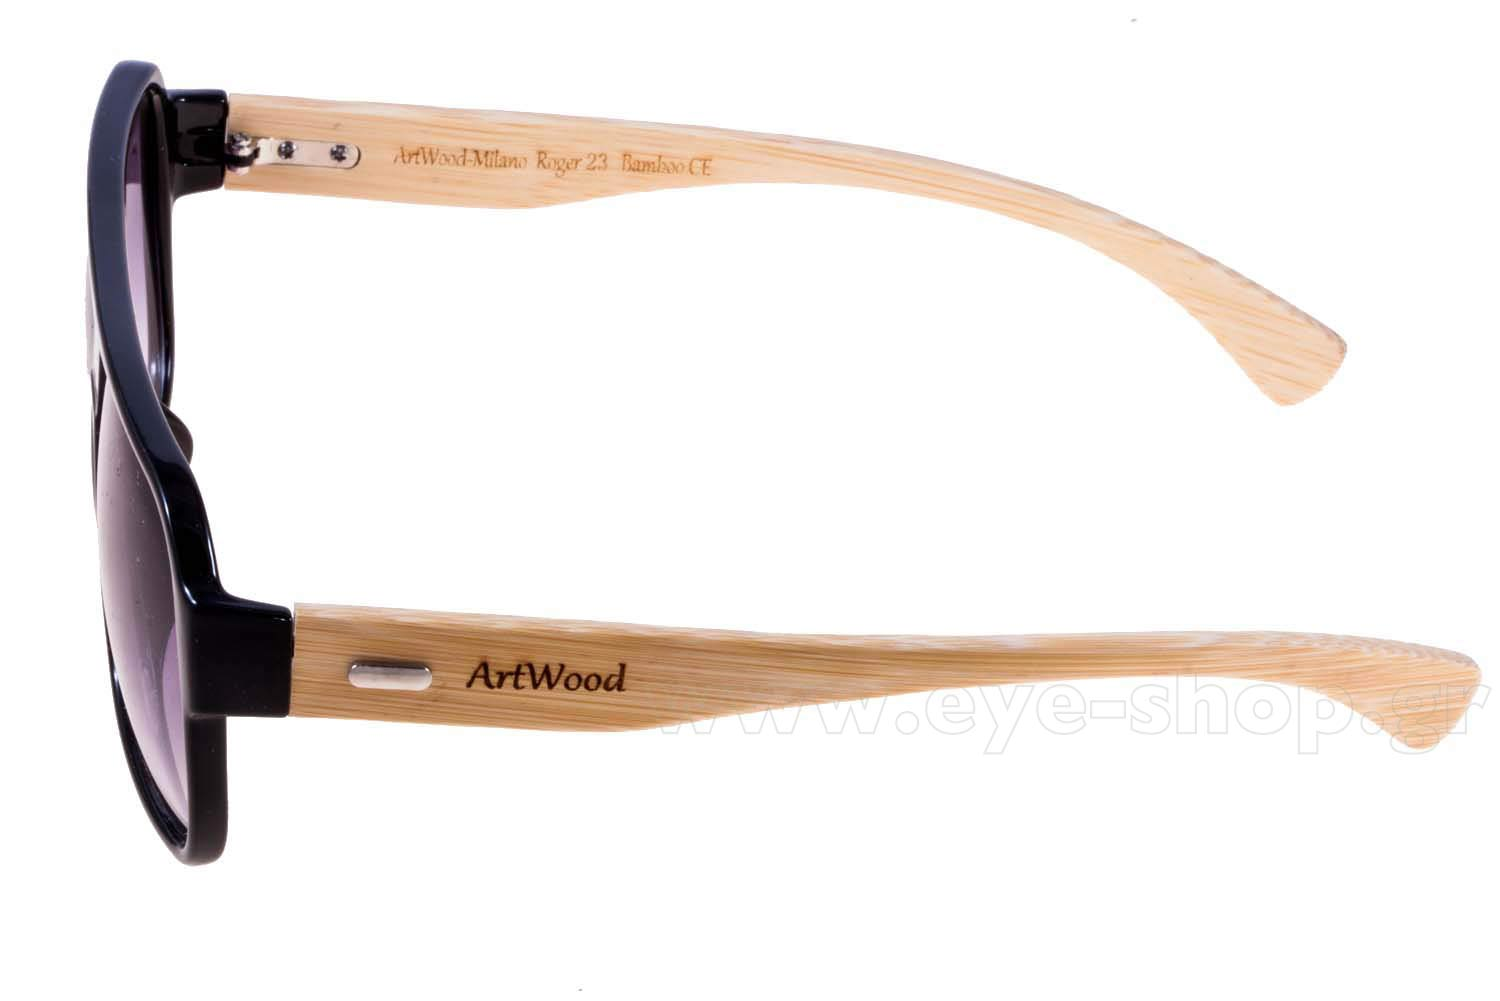 Artwood Milano μοντέλο Roger 23 στο χρώμα Black Grey gradient